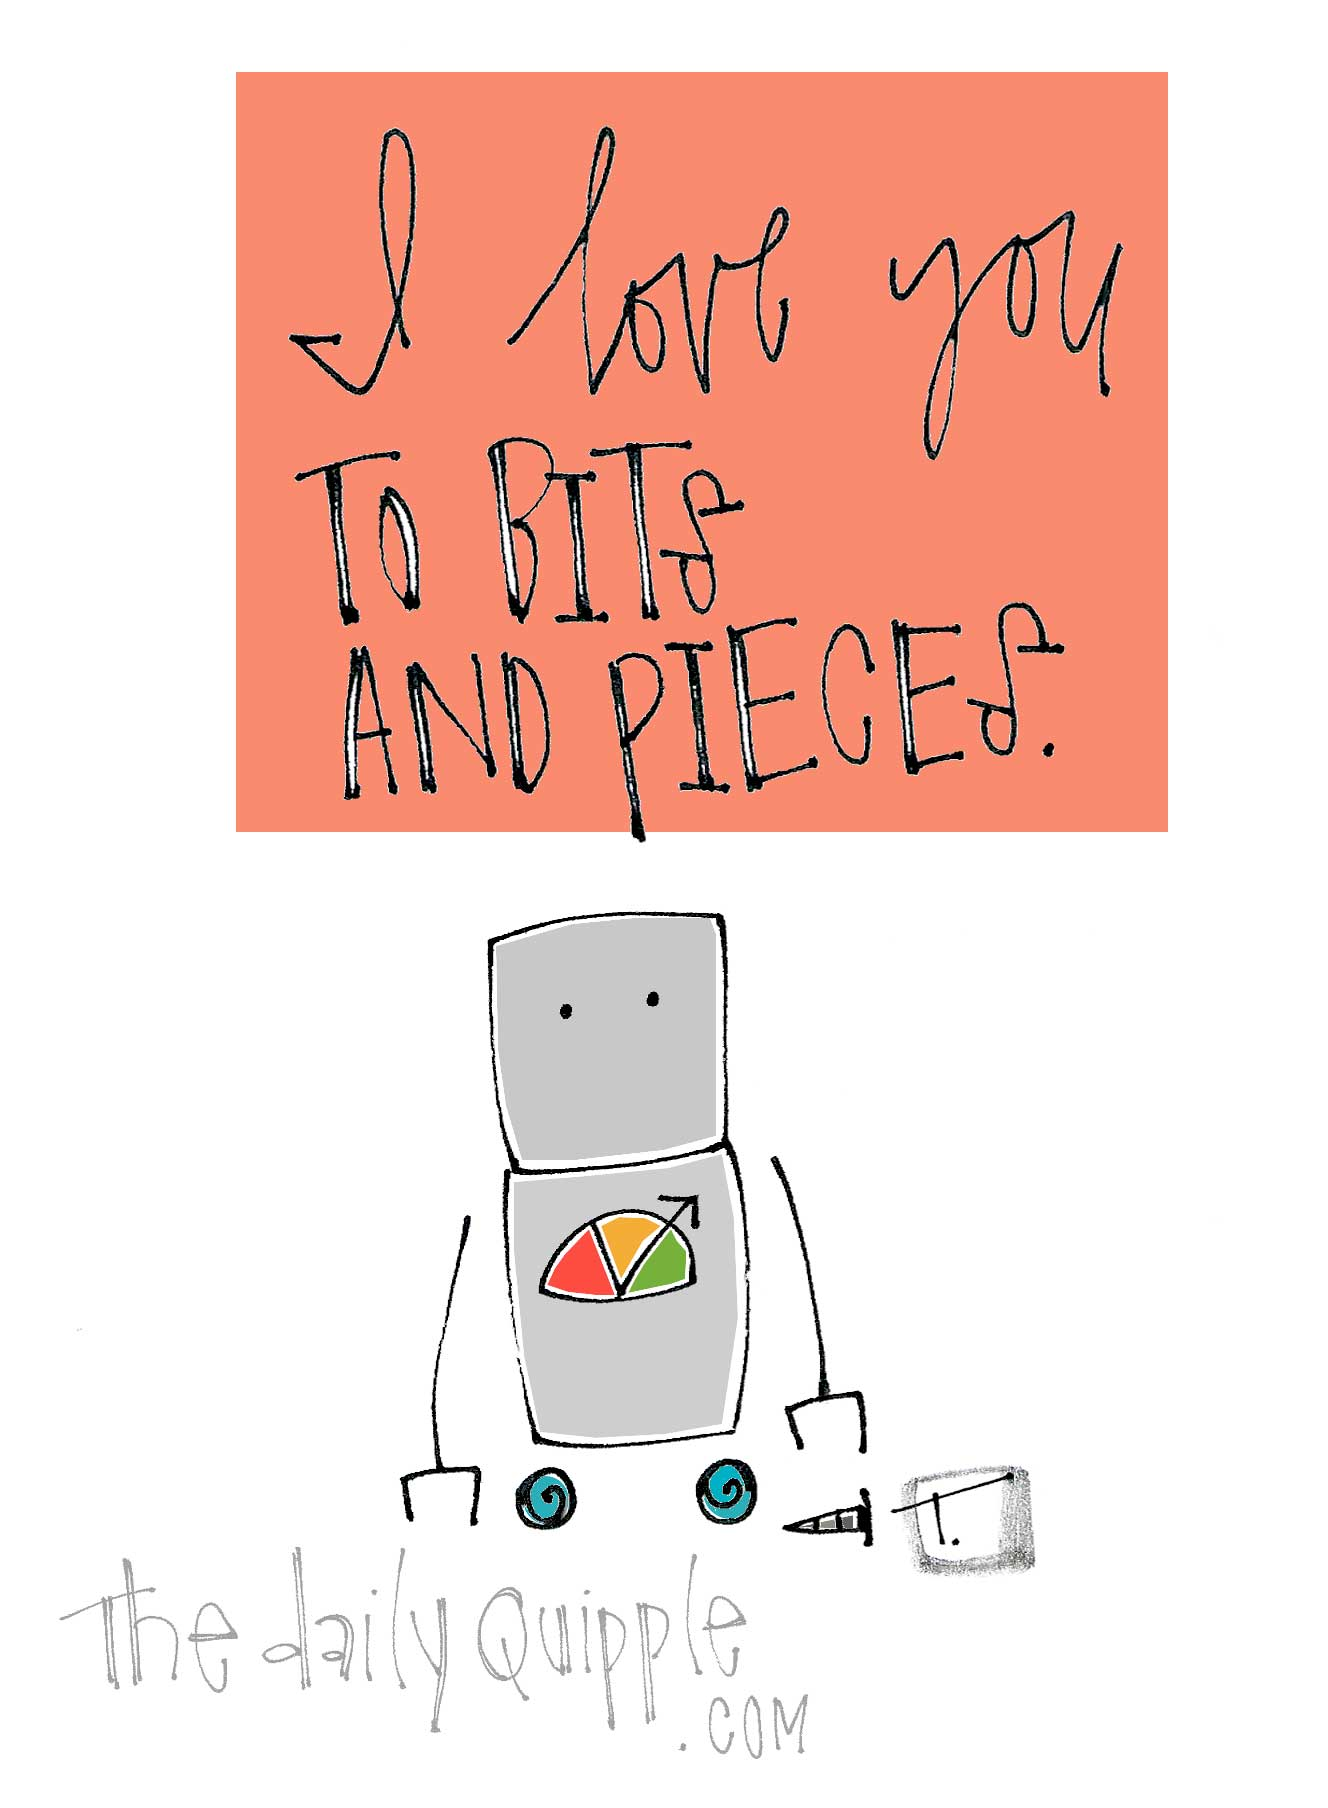 Love You To Bits And Pieces The Daily Quipple